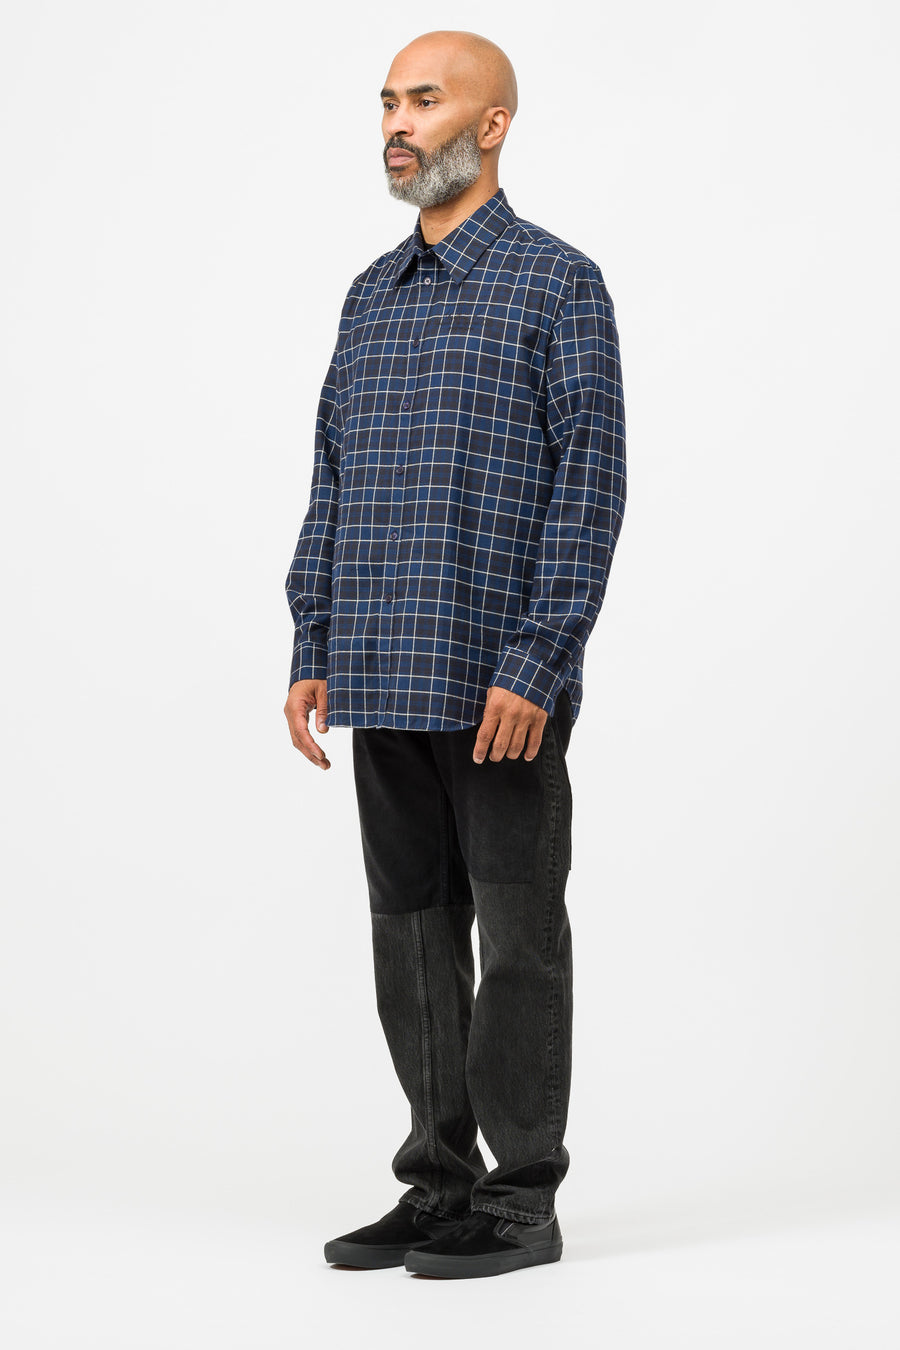 Martine Rose Classic Shirt in Black/White/Blue Check - Notre